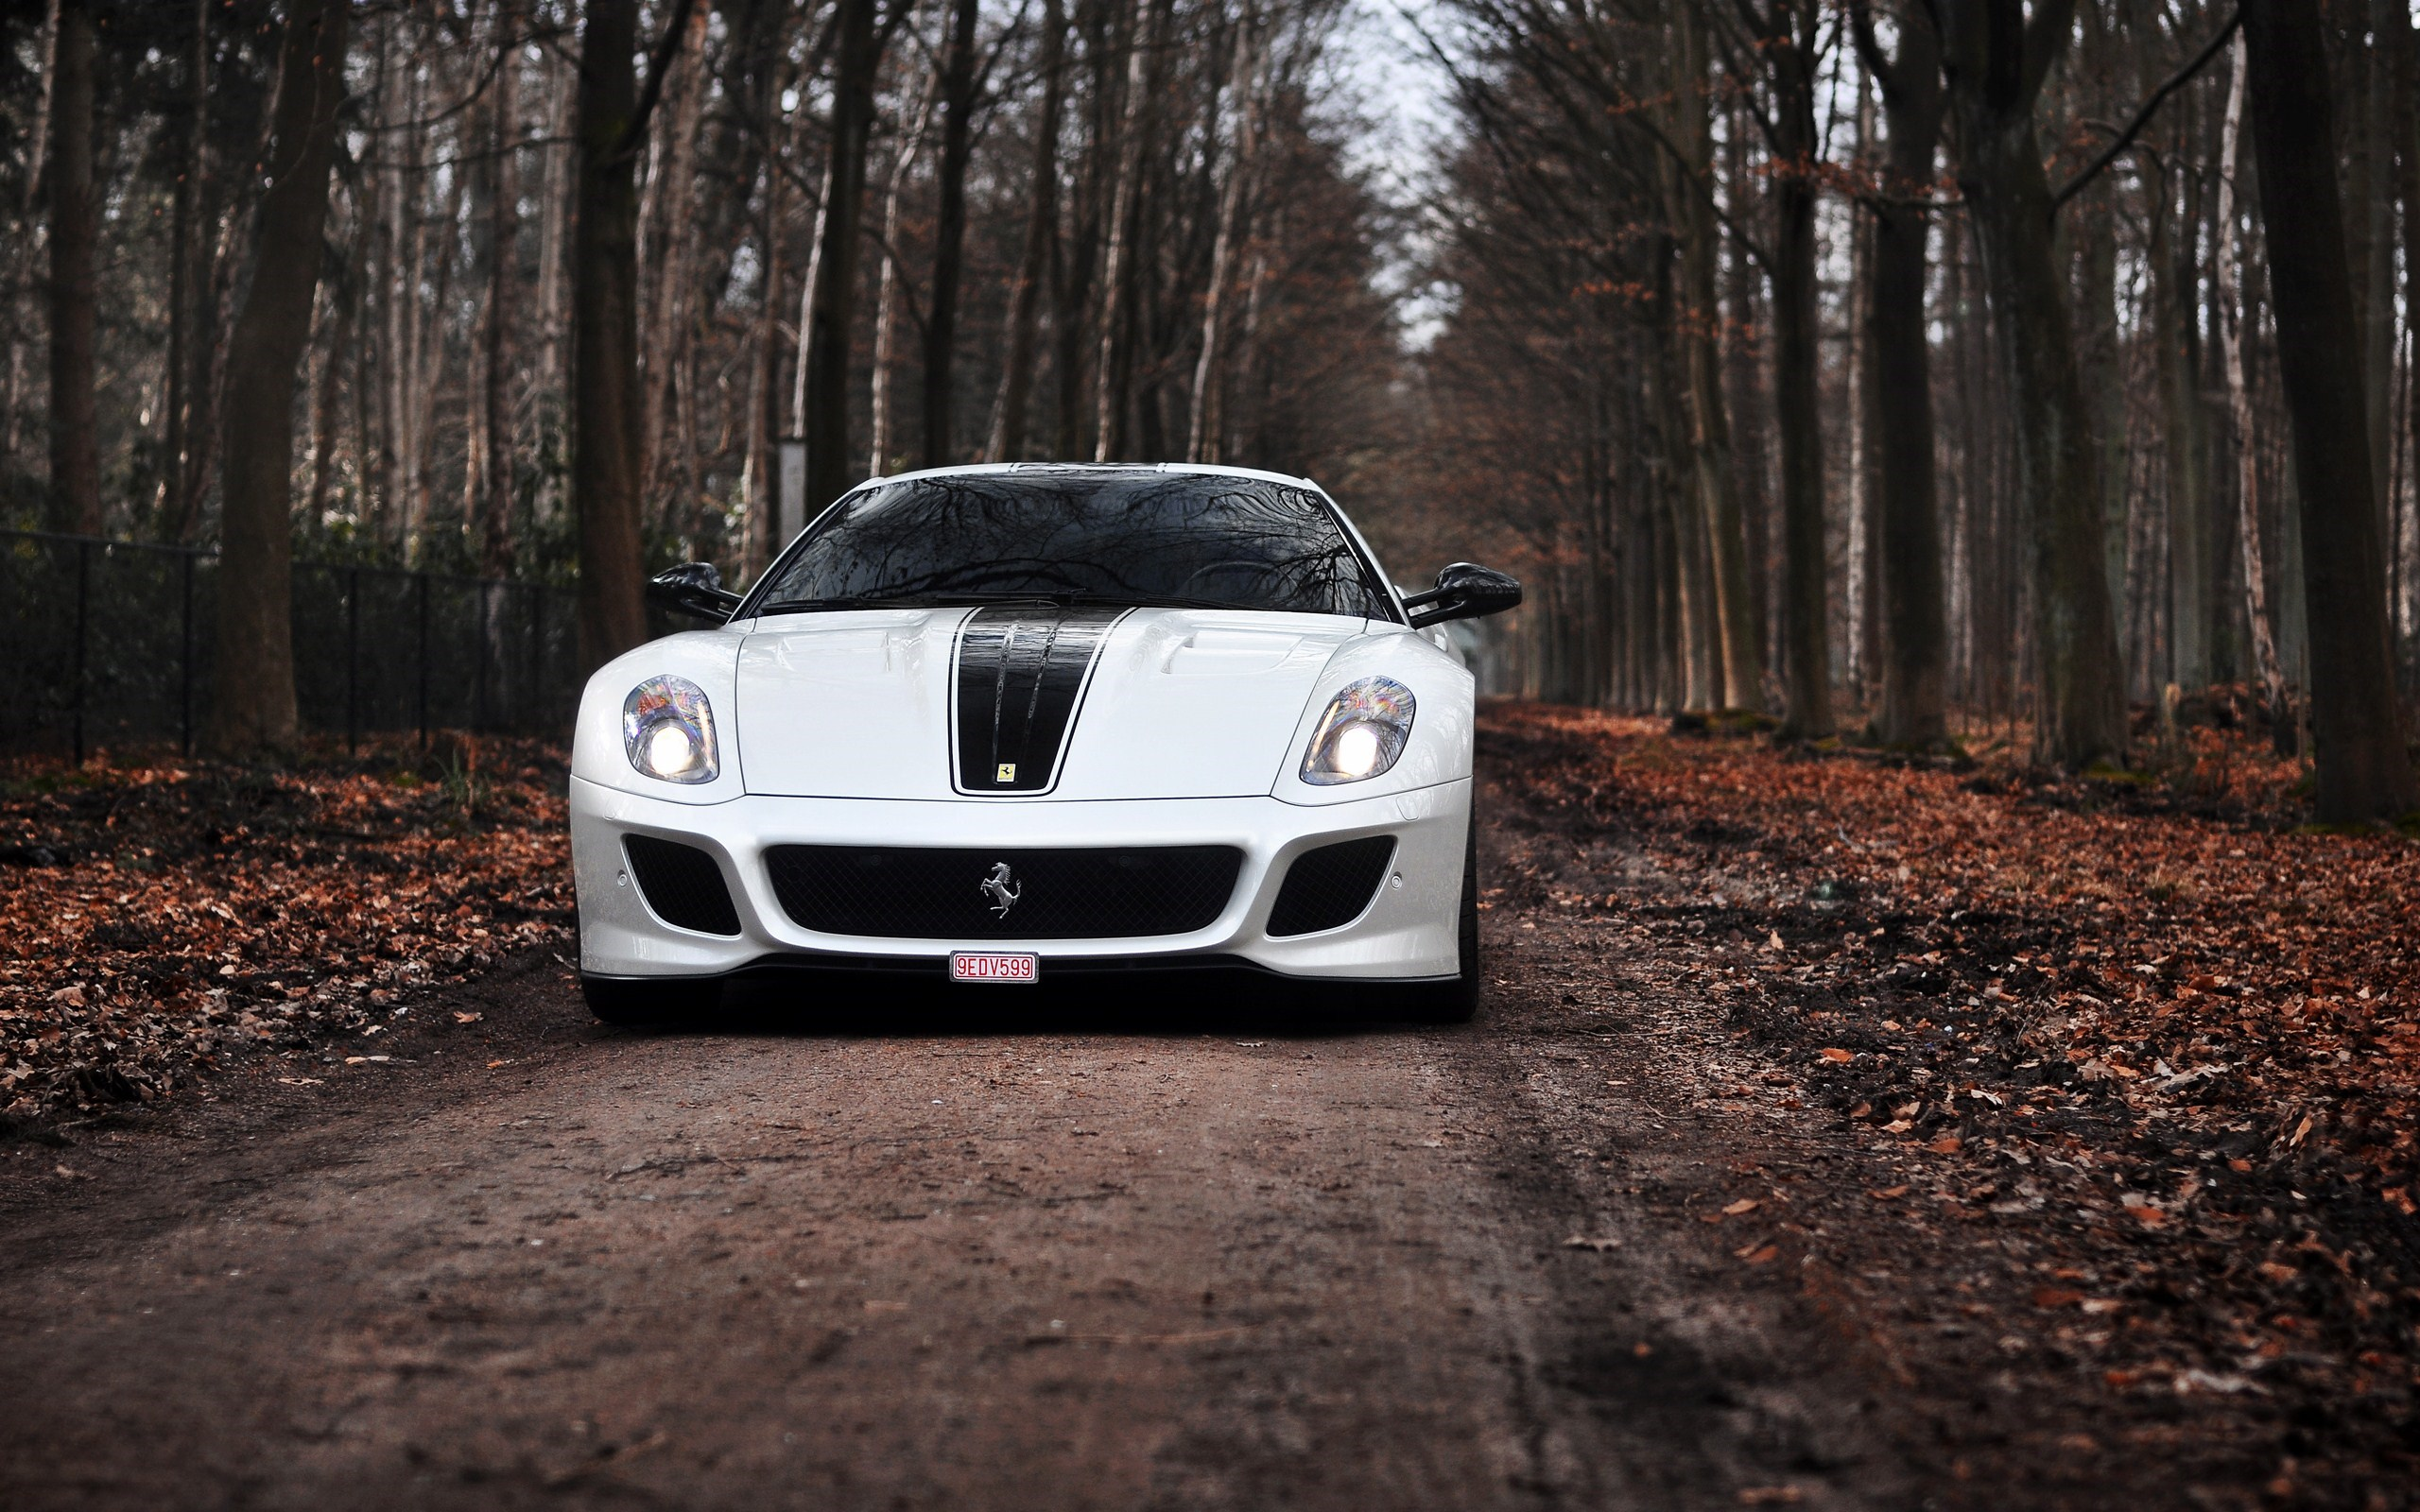 White Ferrari 599 GTO Road Forest Autumn